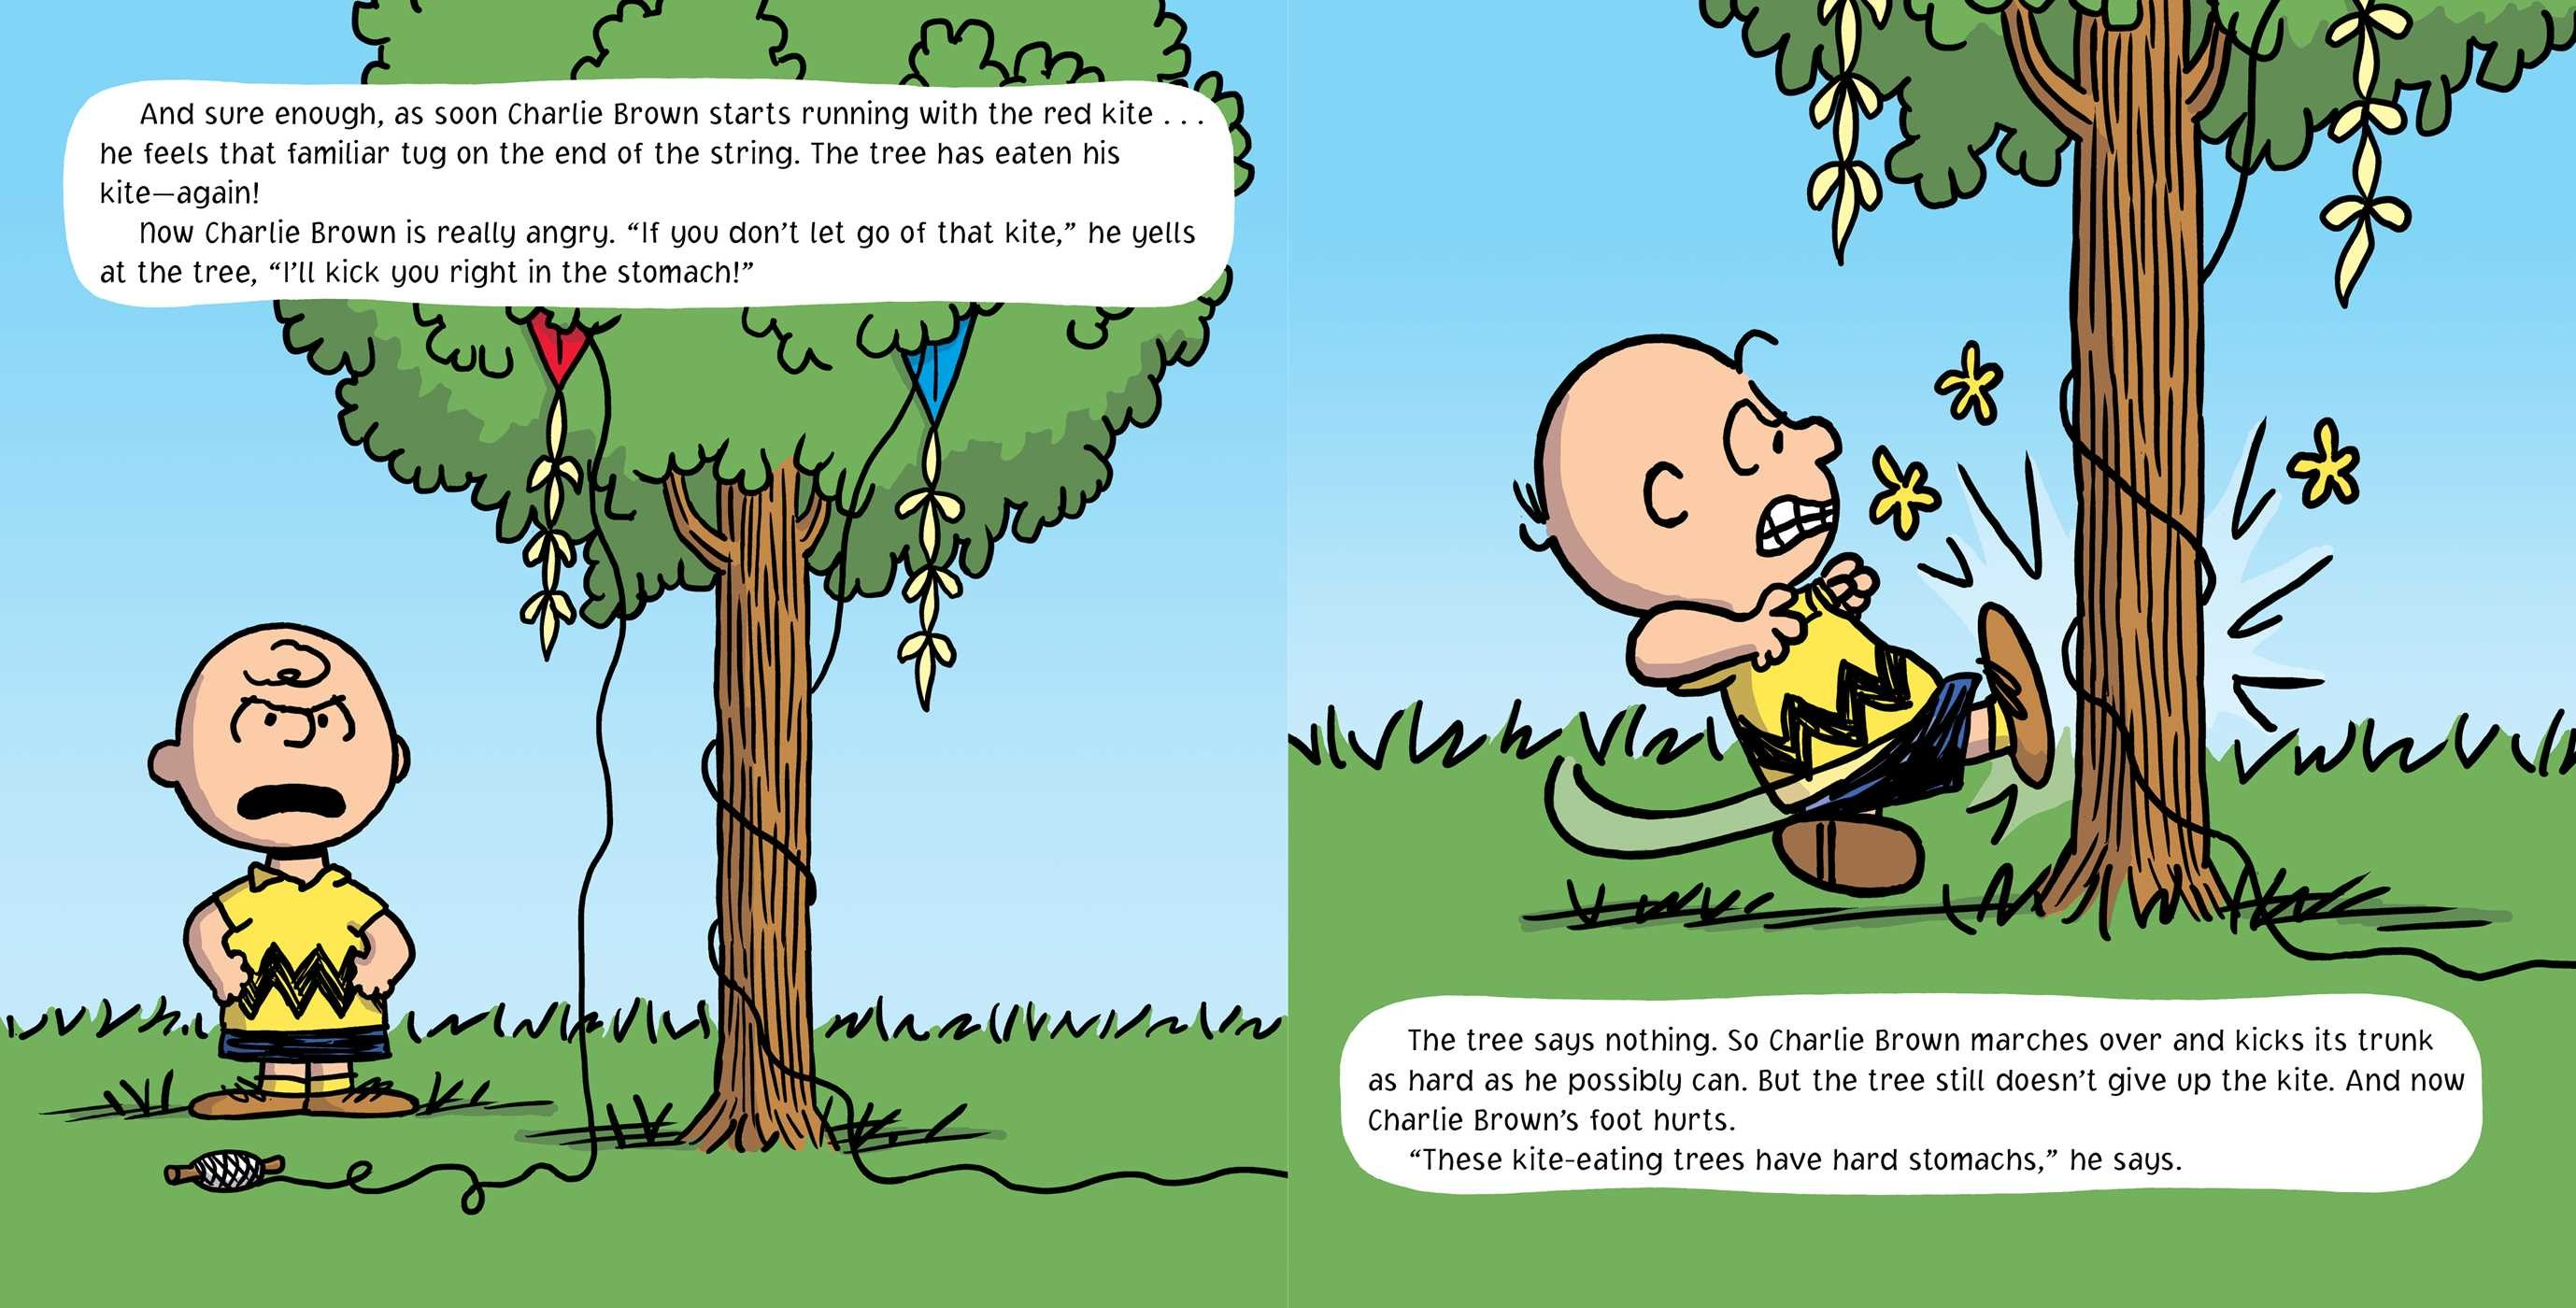 Go fly a kite charlie brown 9781481439558.in02